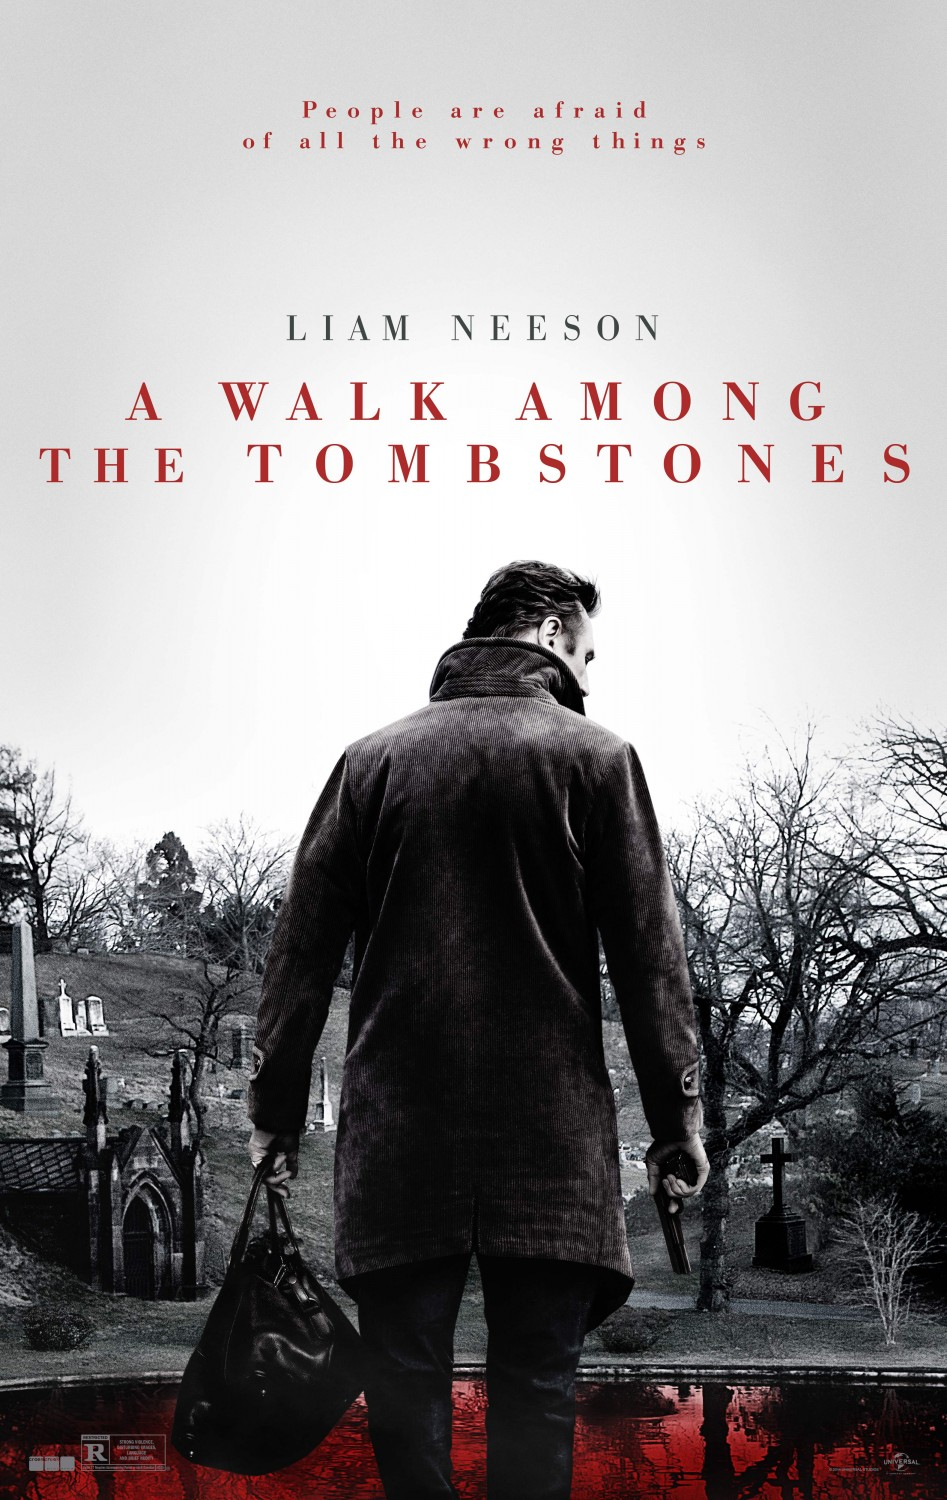 A walk among the tombstones trailer.